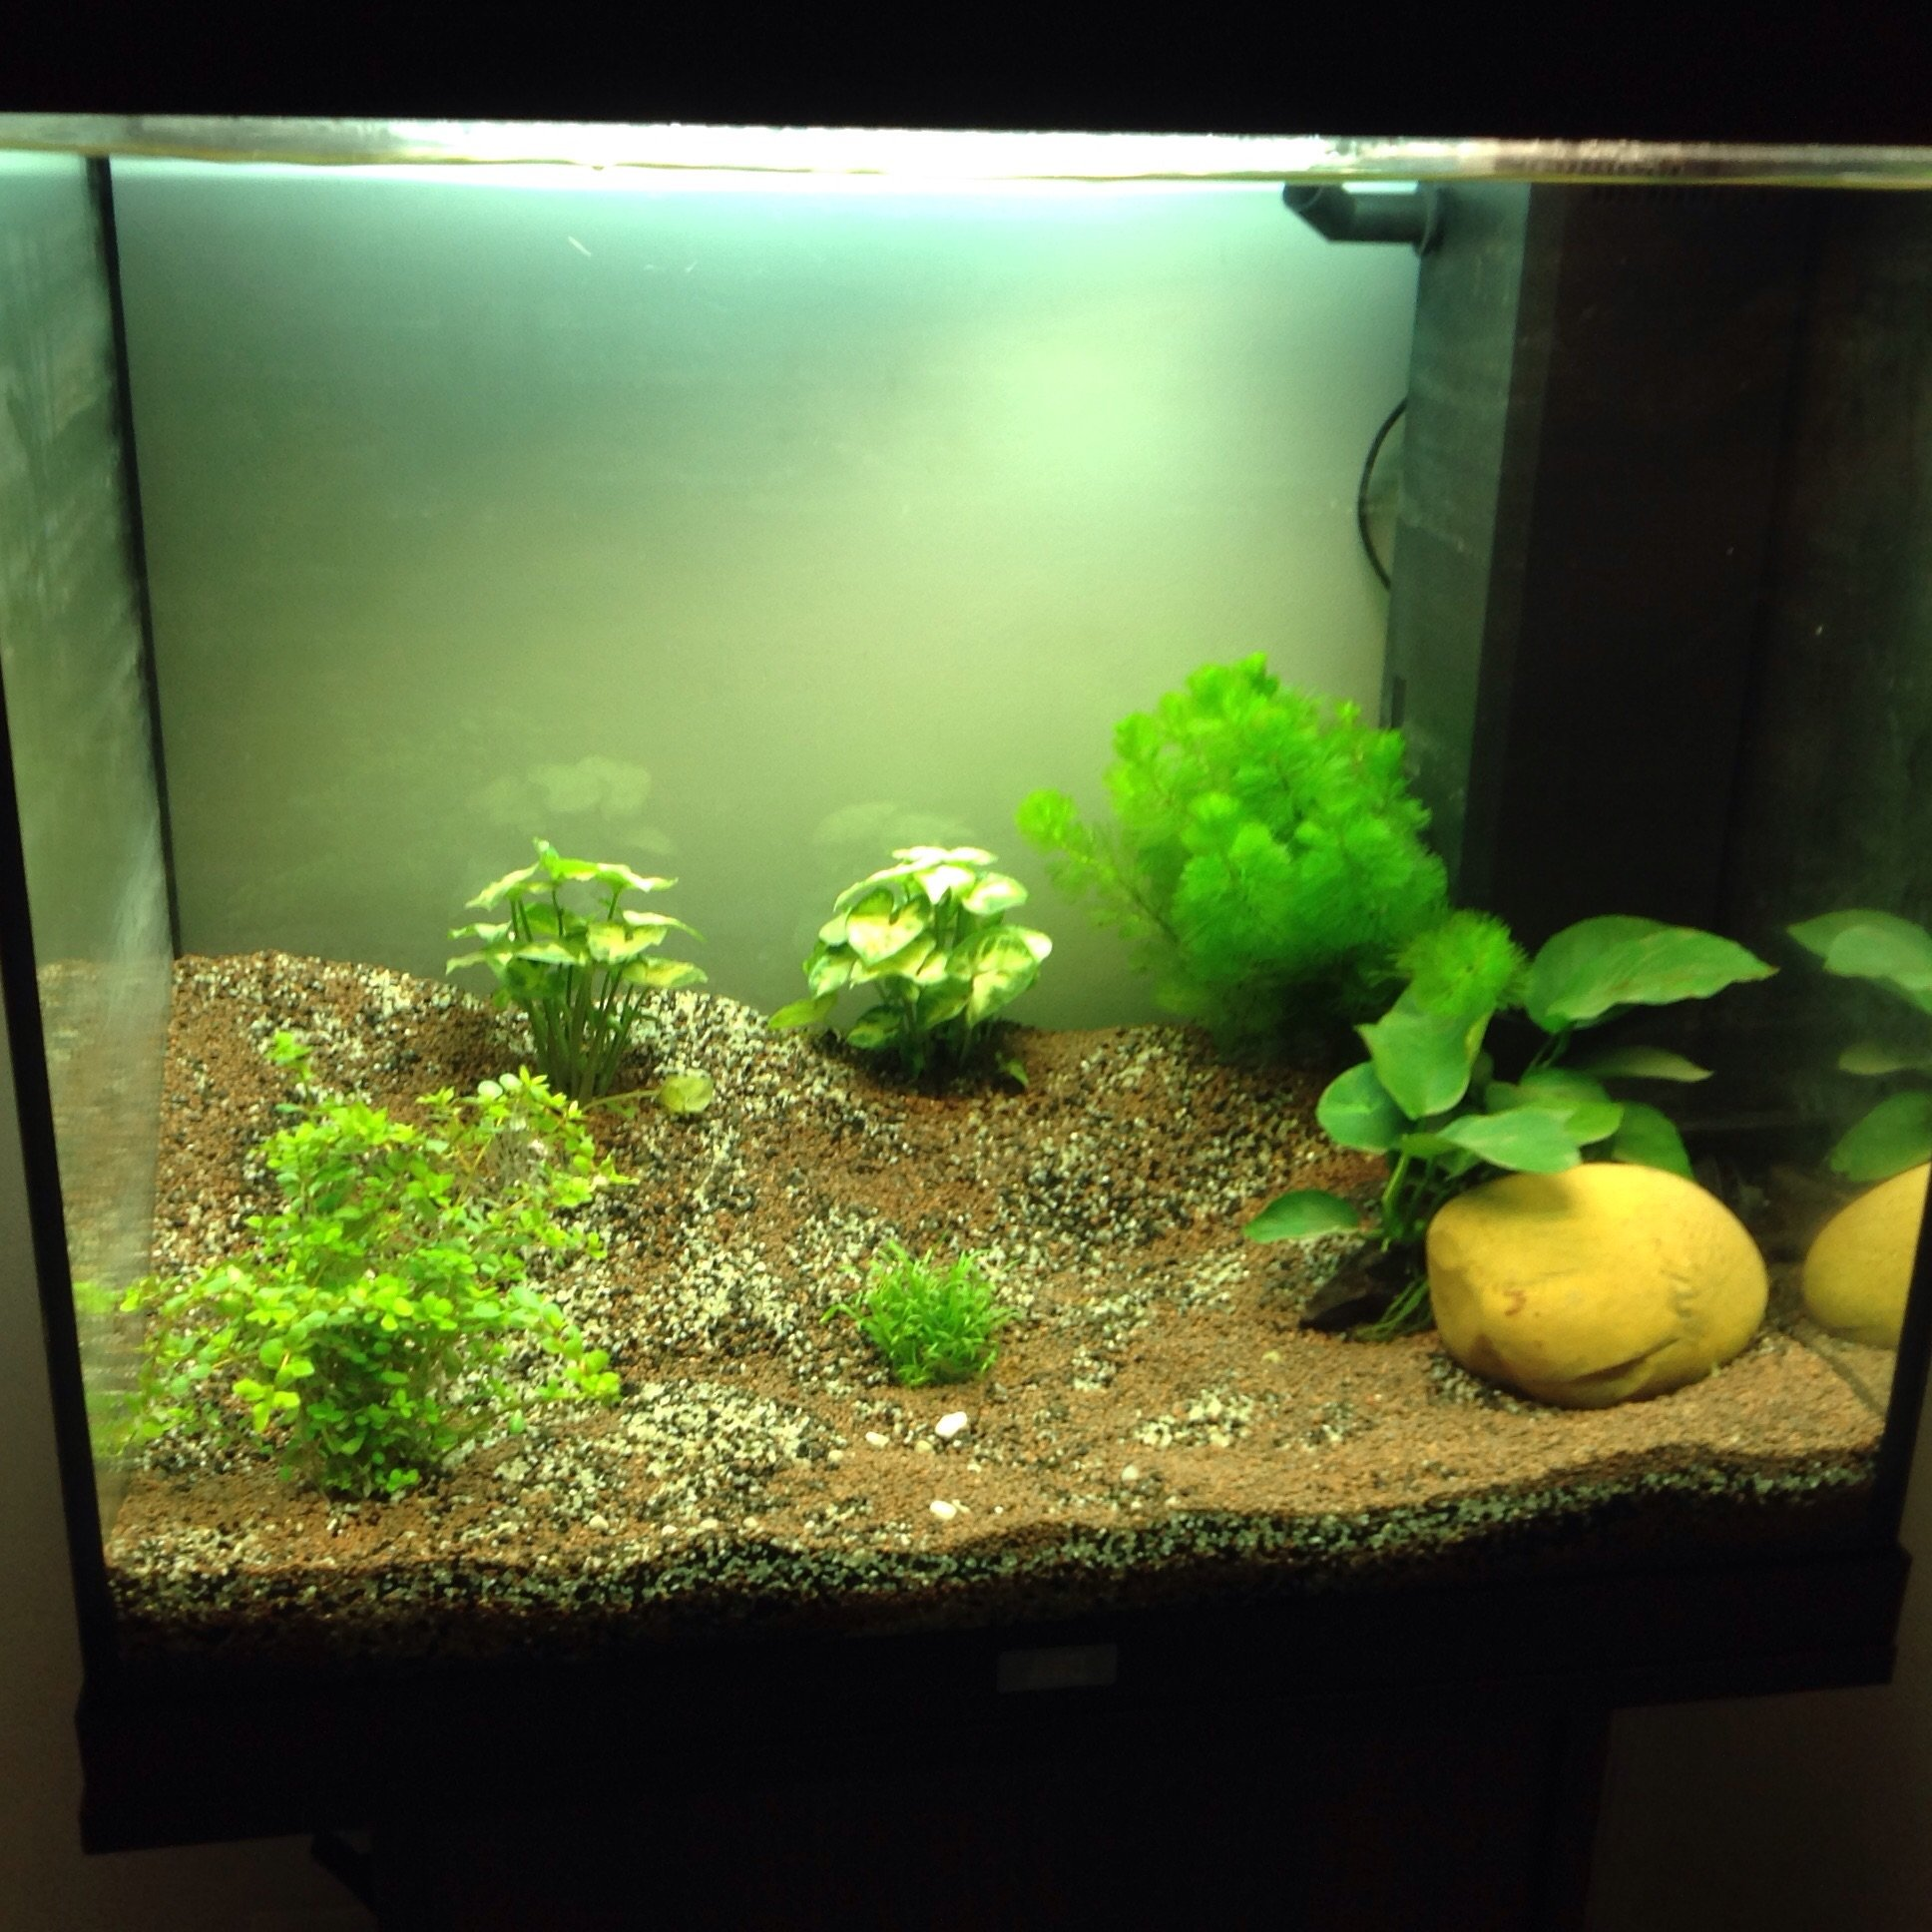 les plantes dans l 39 aquarium de 120 litres. Black Bedroom Furniture Sets. Home Design Ideas